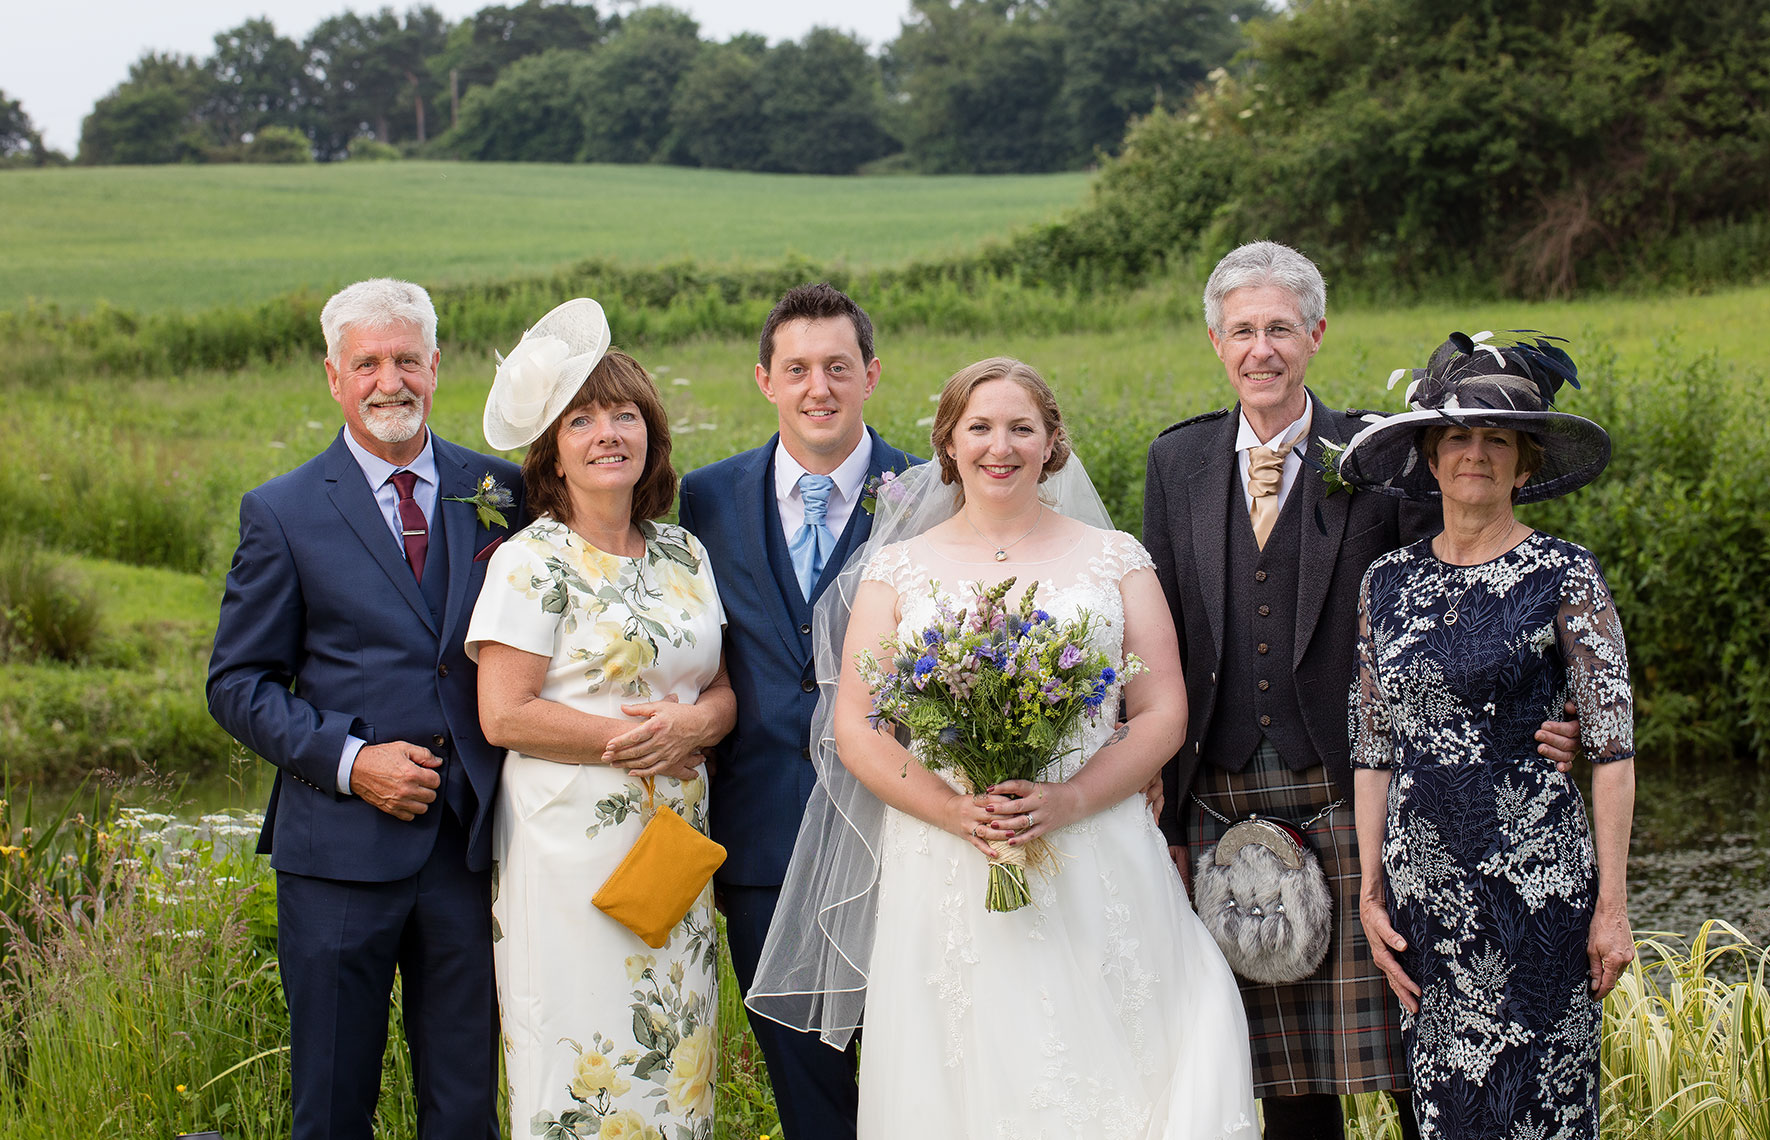 Handsome groom and smiling beautiful bride pose for group wedding photo with parents